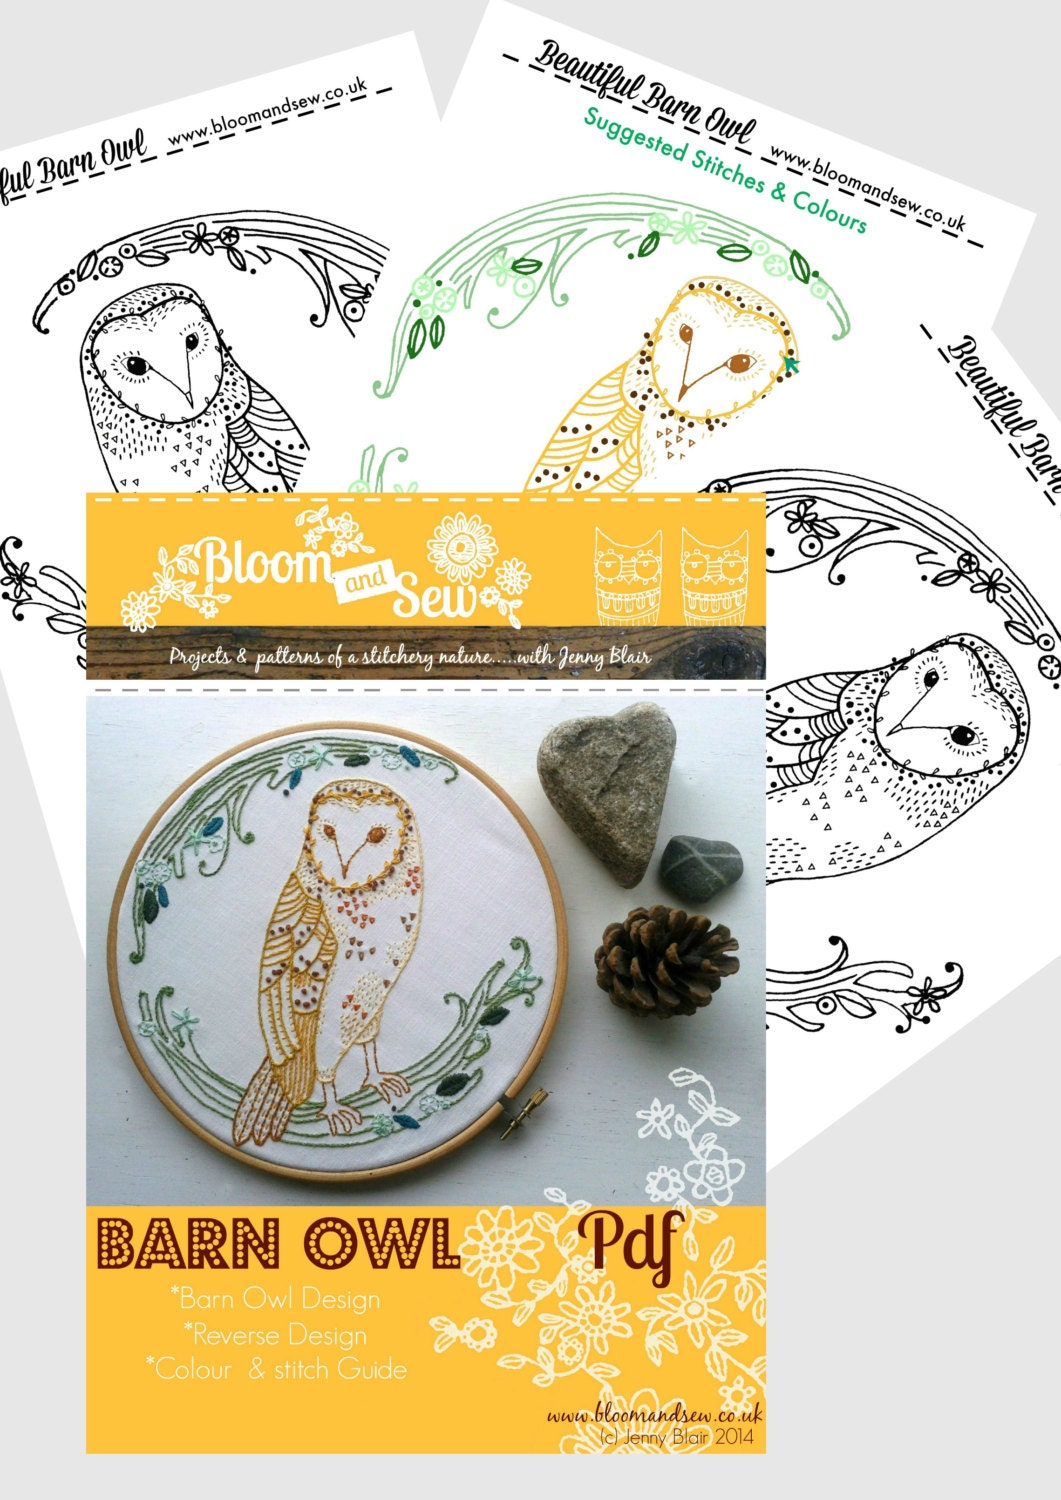 Barn owl embroidery pattern pdf diy wall art needle work owl this is a digital file bankloansurffo Image collections